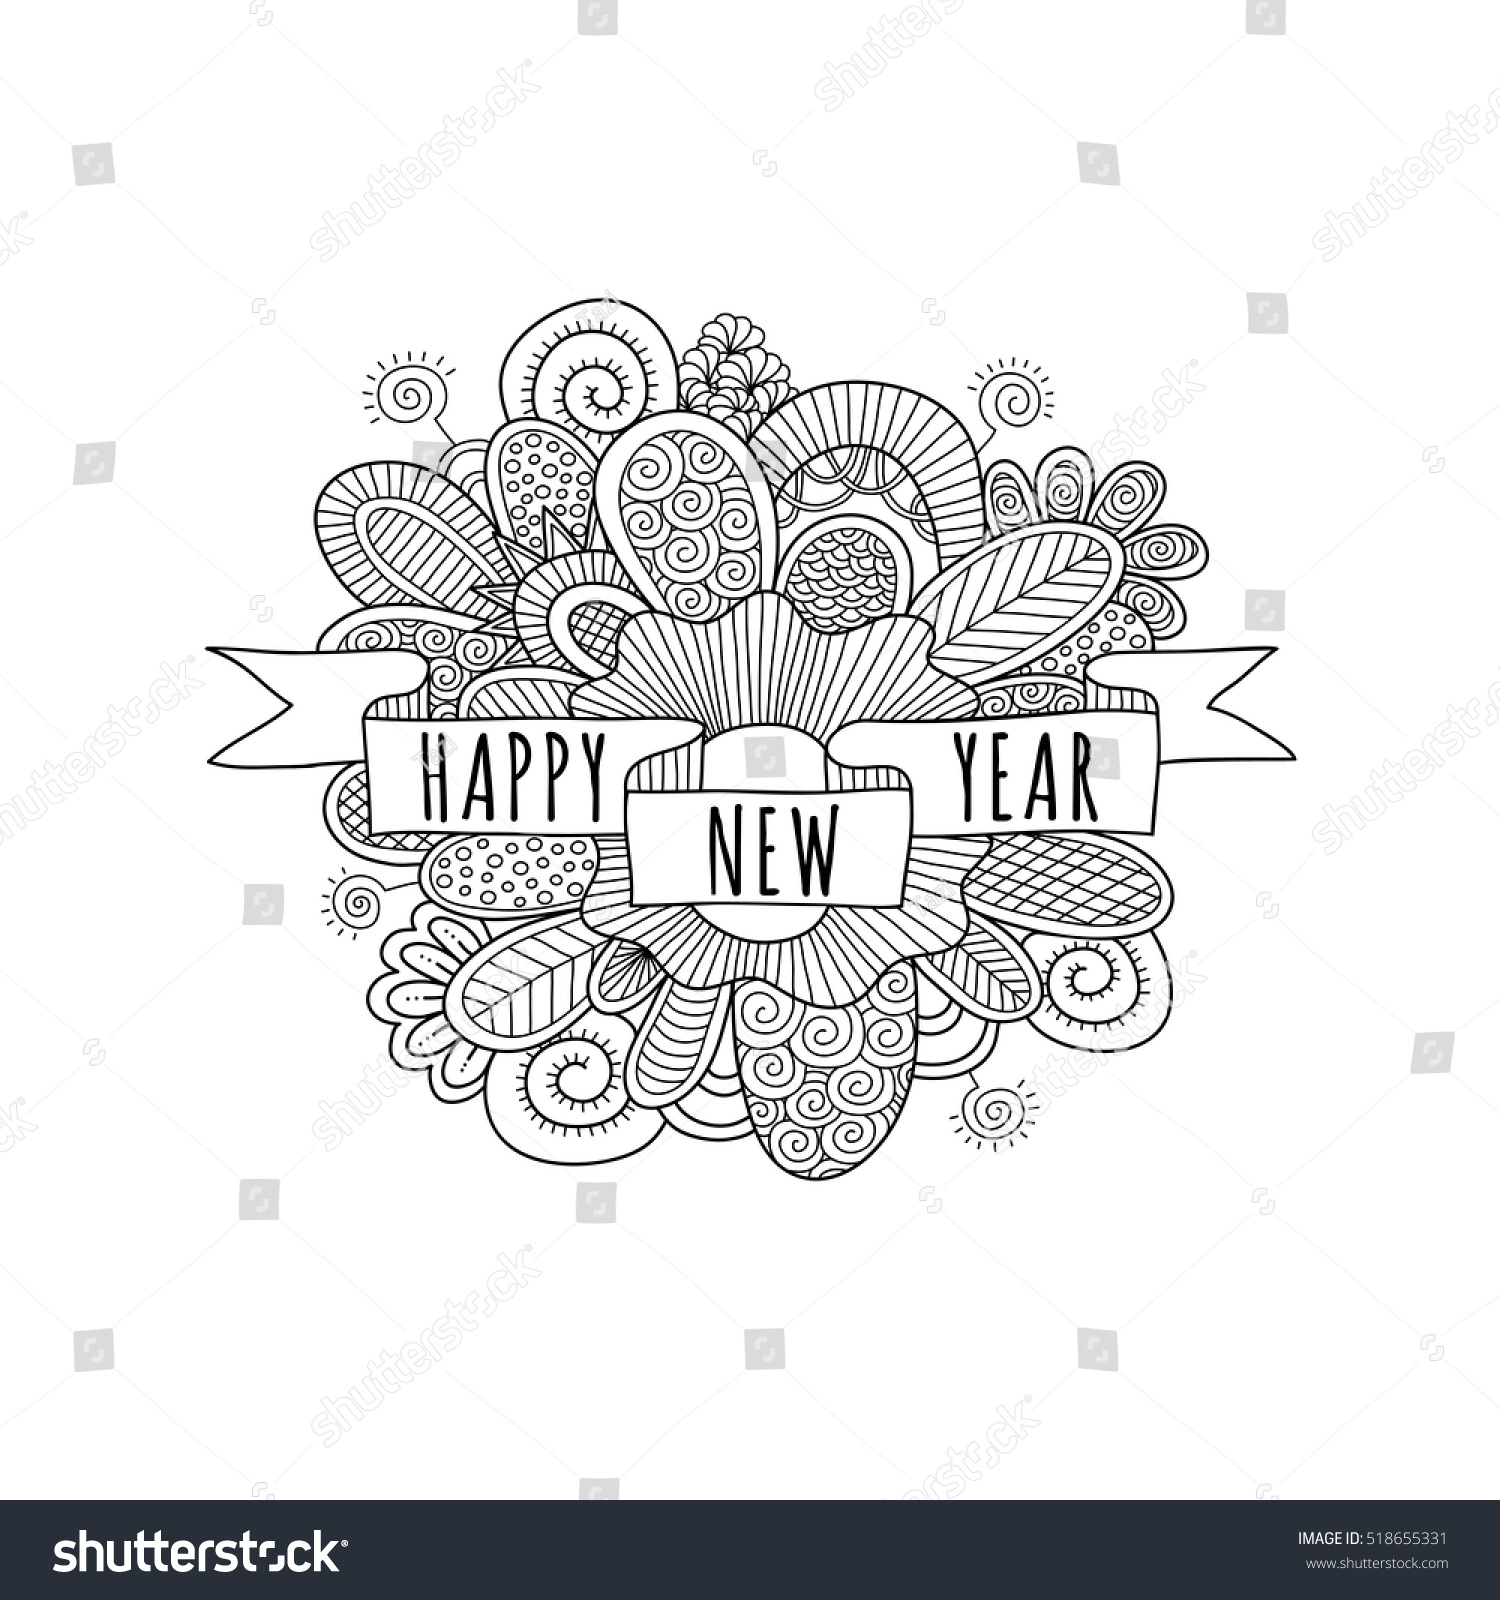 Happy New Year Ribbon Banner Words Stock Vector (Royalty Free ...